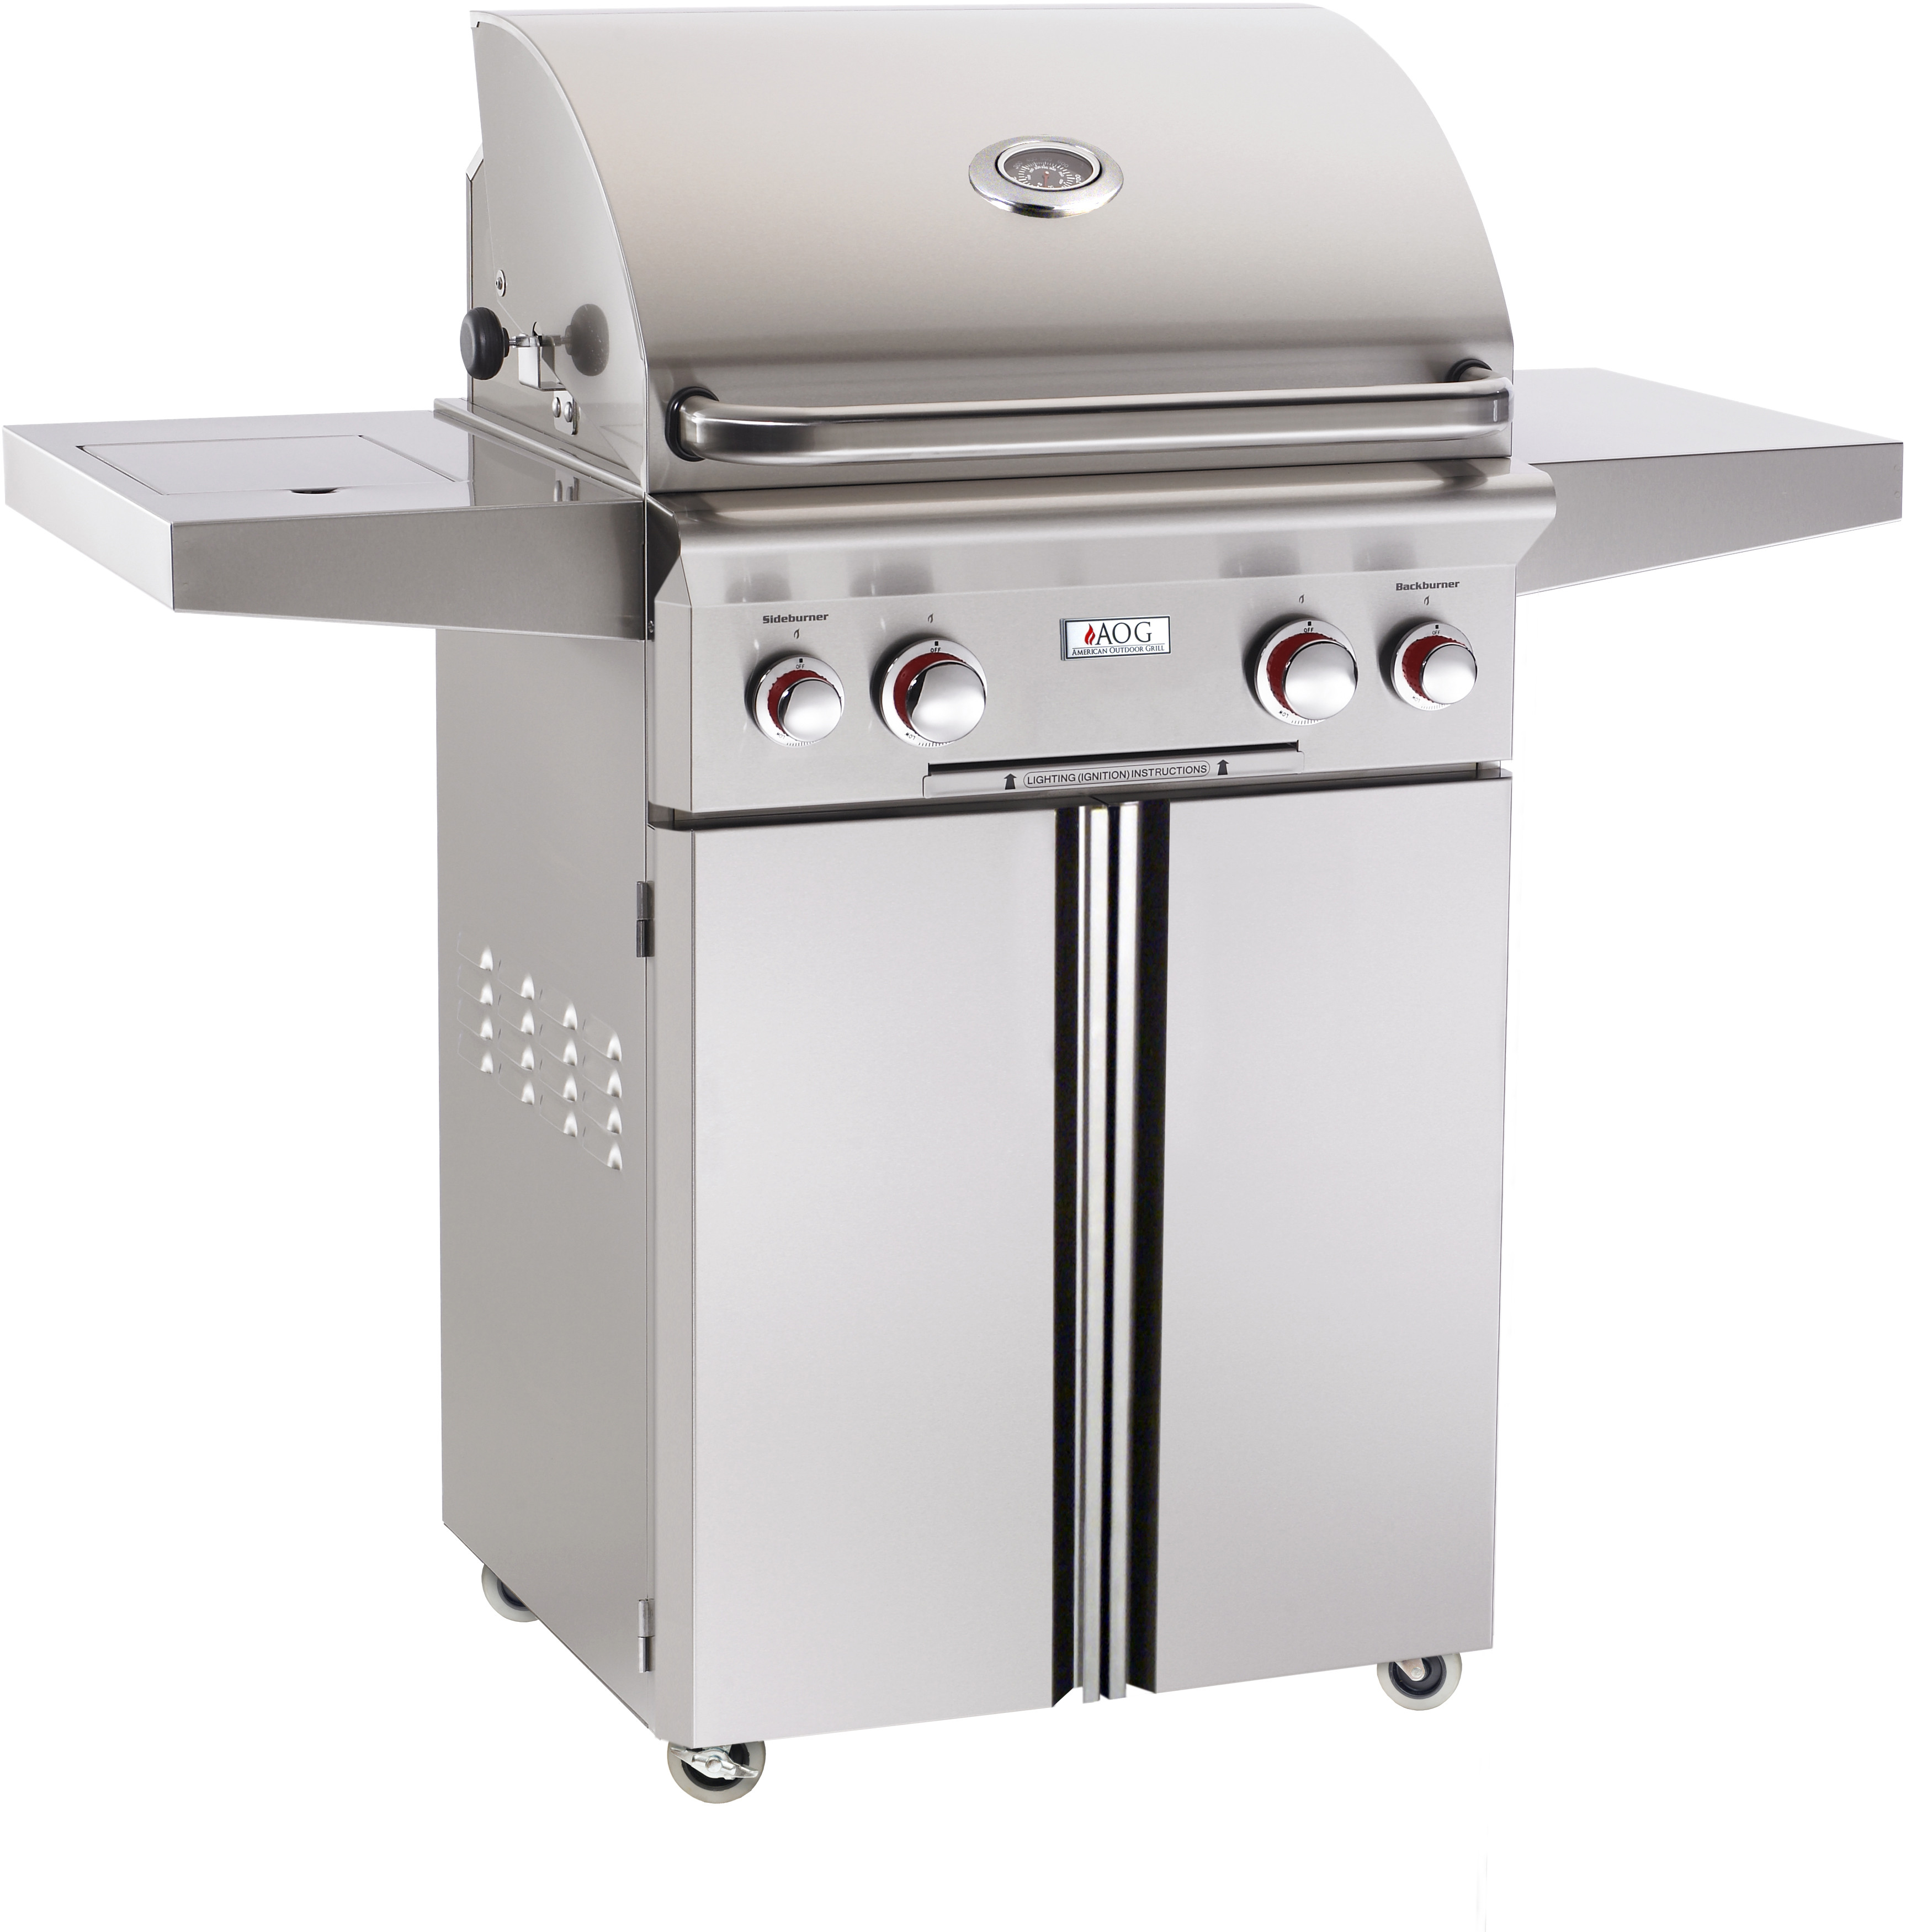 American Outdoor Grill tseries Freestanding Barbecue Grill Stainless Steel 24PCT00SP